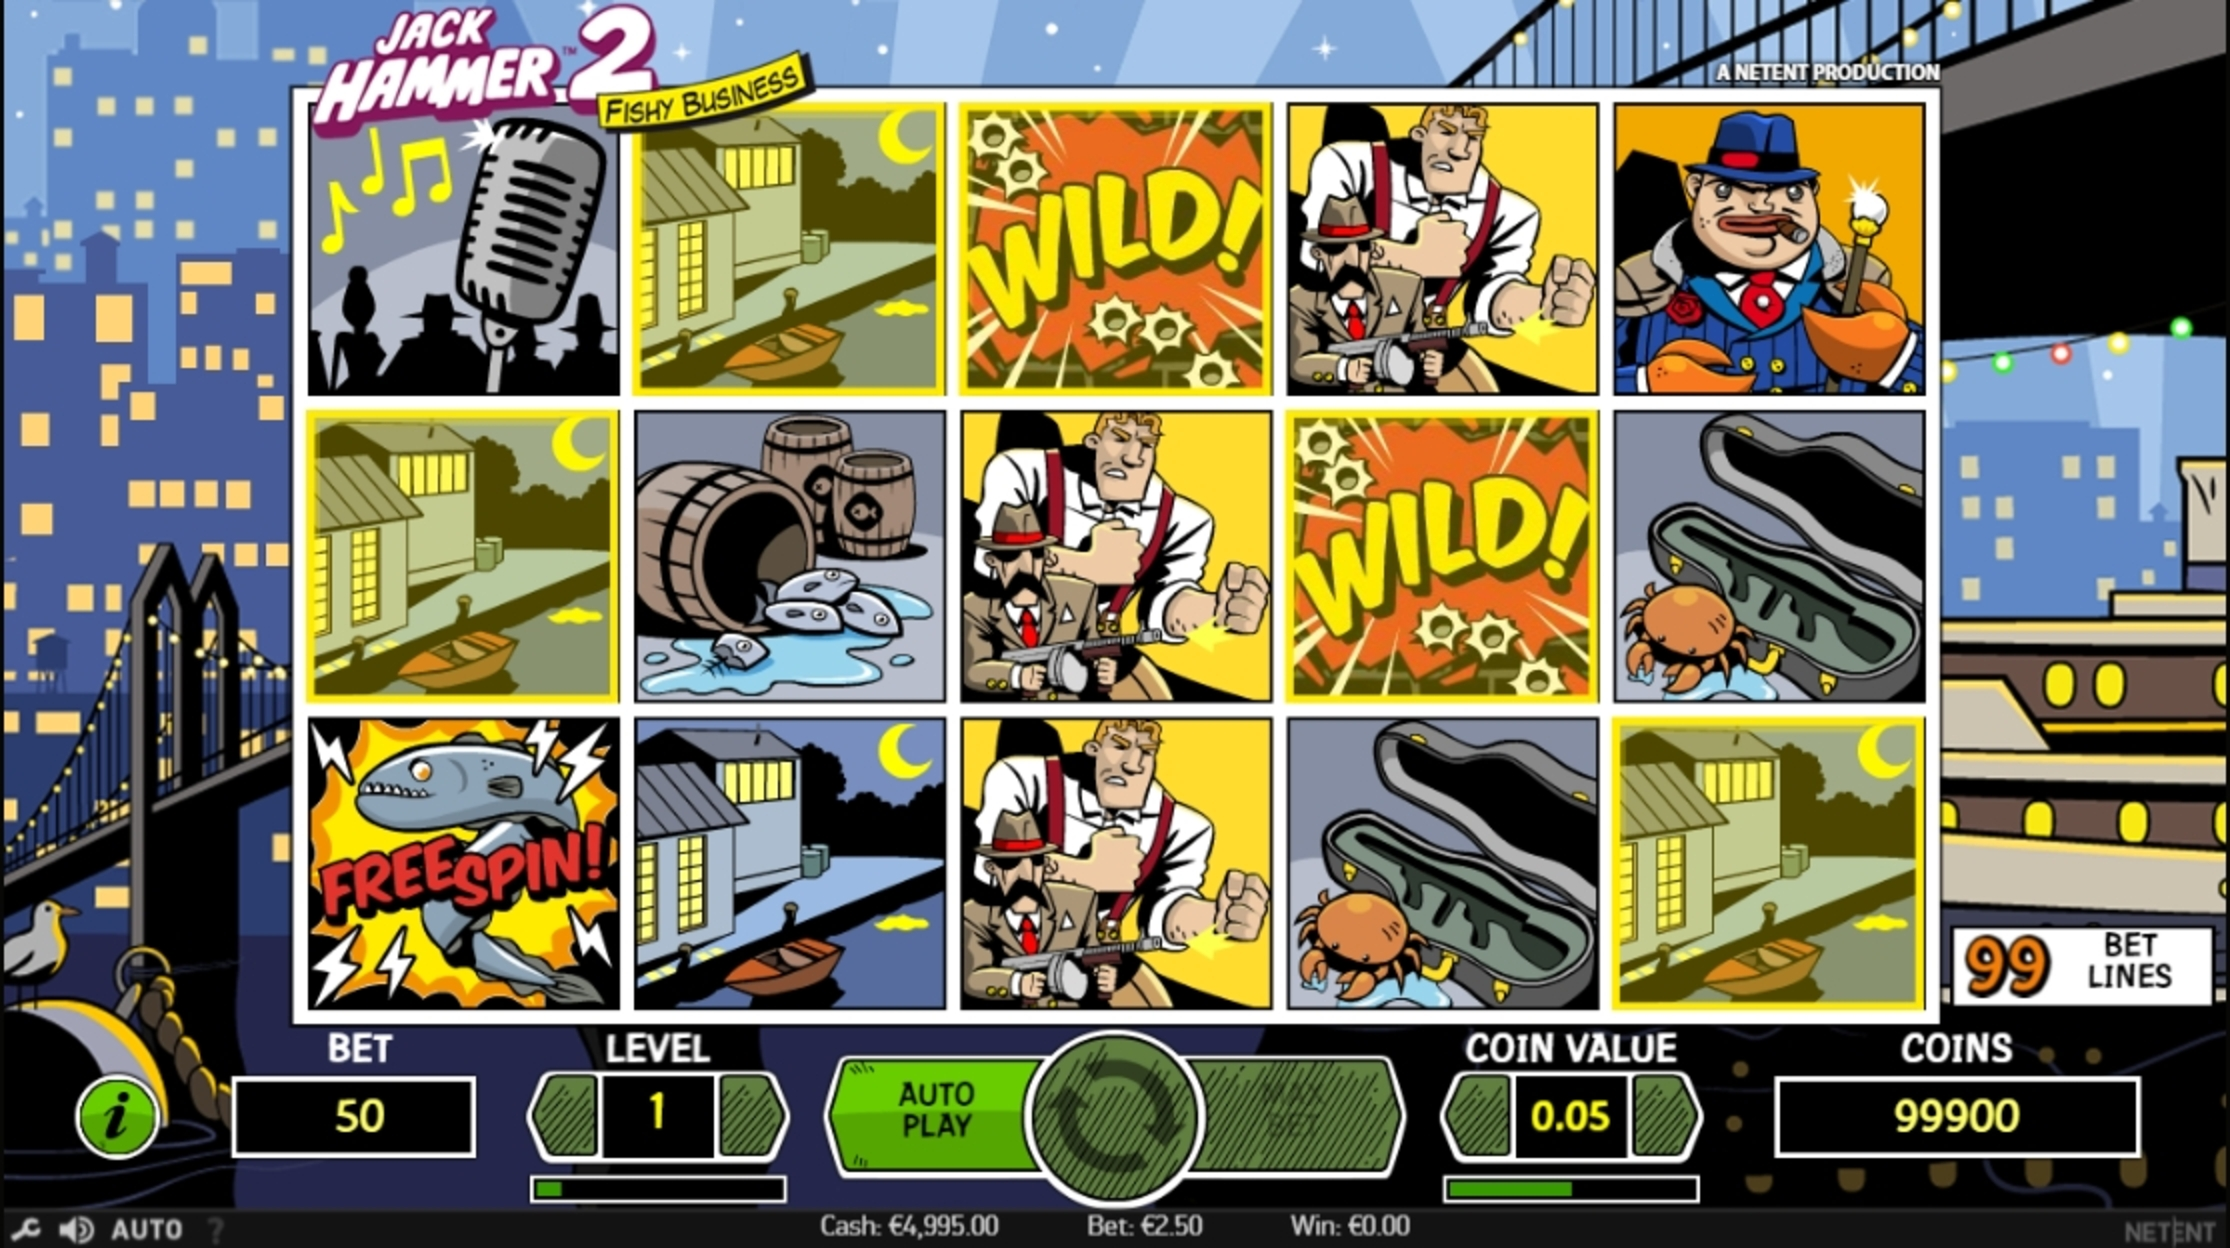 Win Money in Jack Hammer 2 Free Slot Game by NetEnt